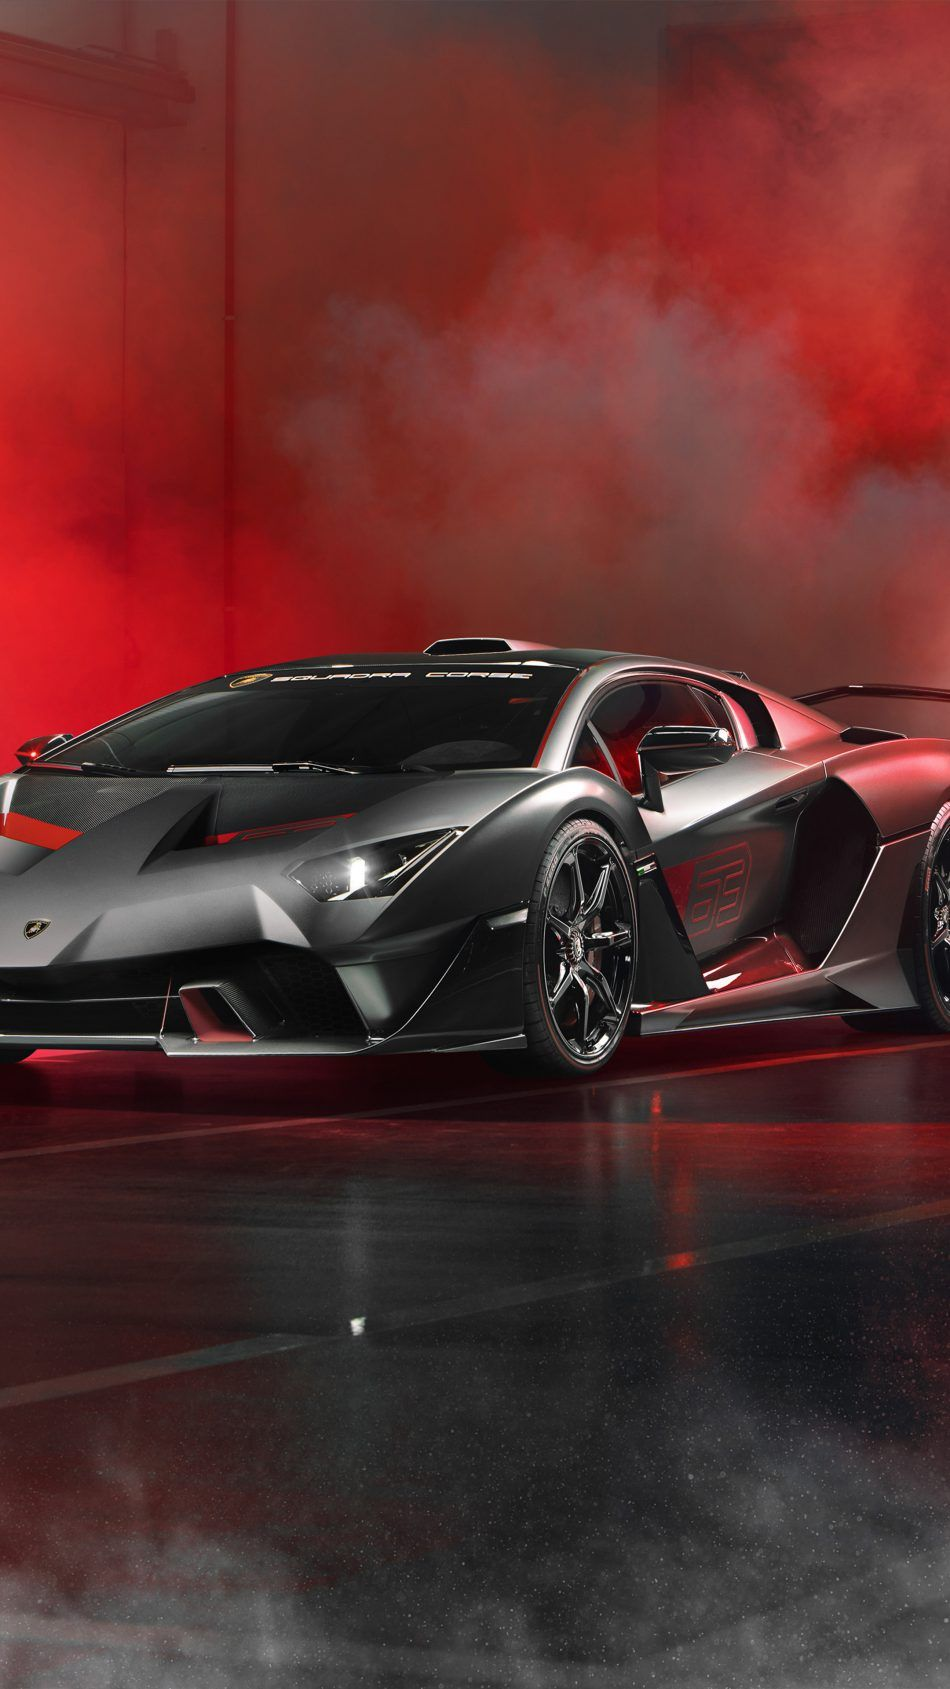 Lamborghini Sc18 Hyper Car 2019 With Images Car Wallpapers